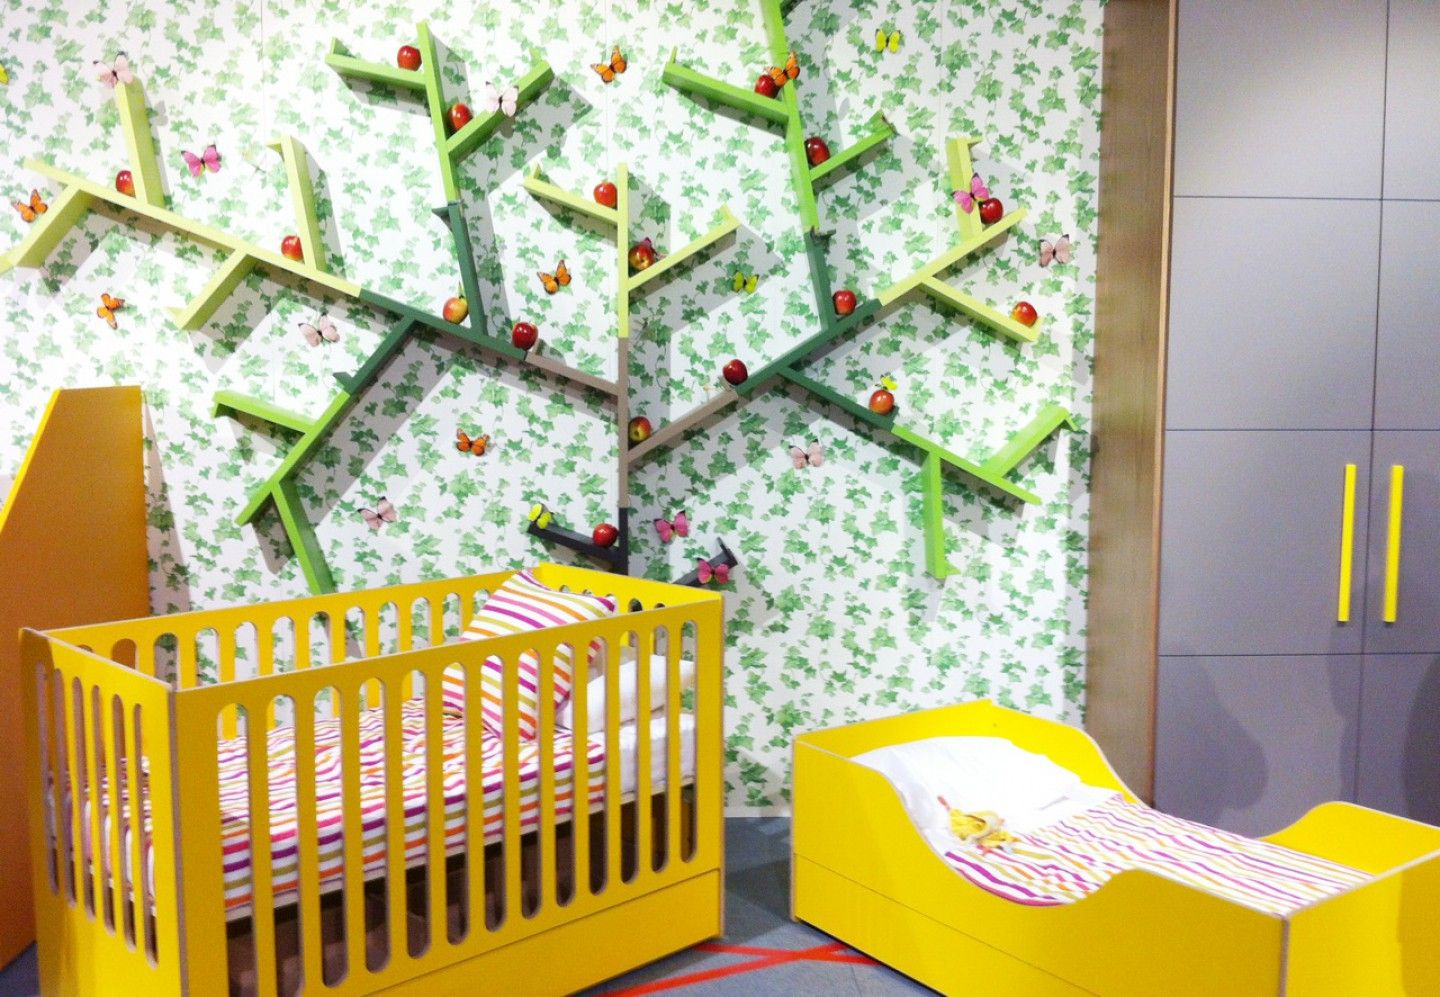 Magical fairy tales from Milan - Designs for Children's Rooms